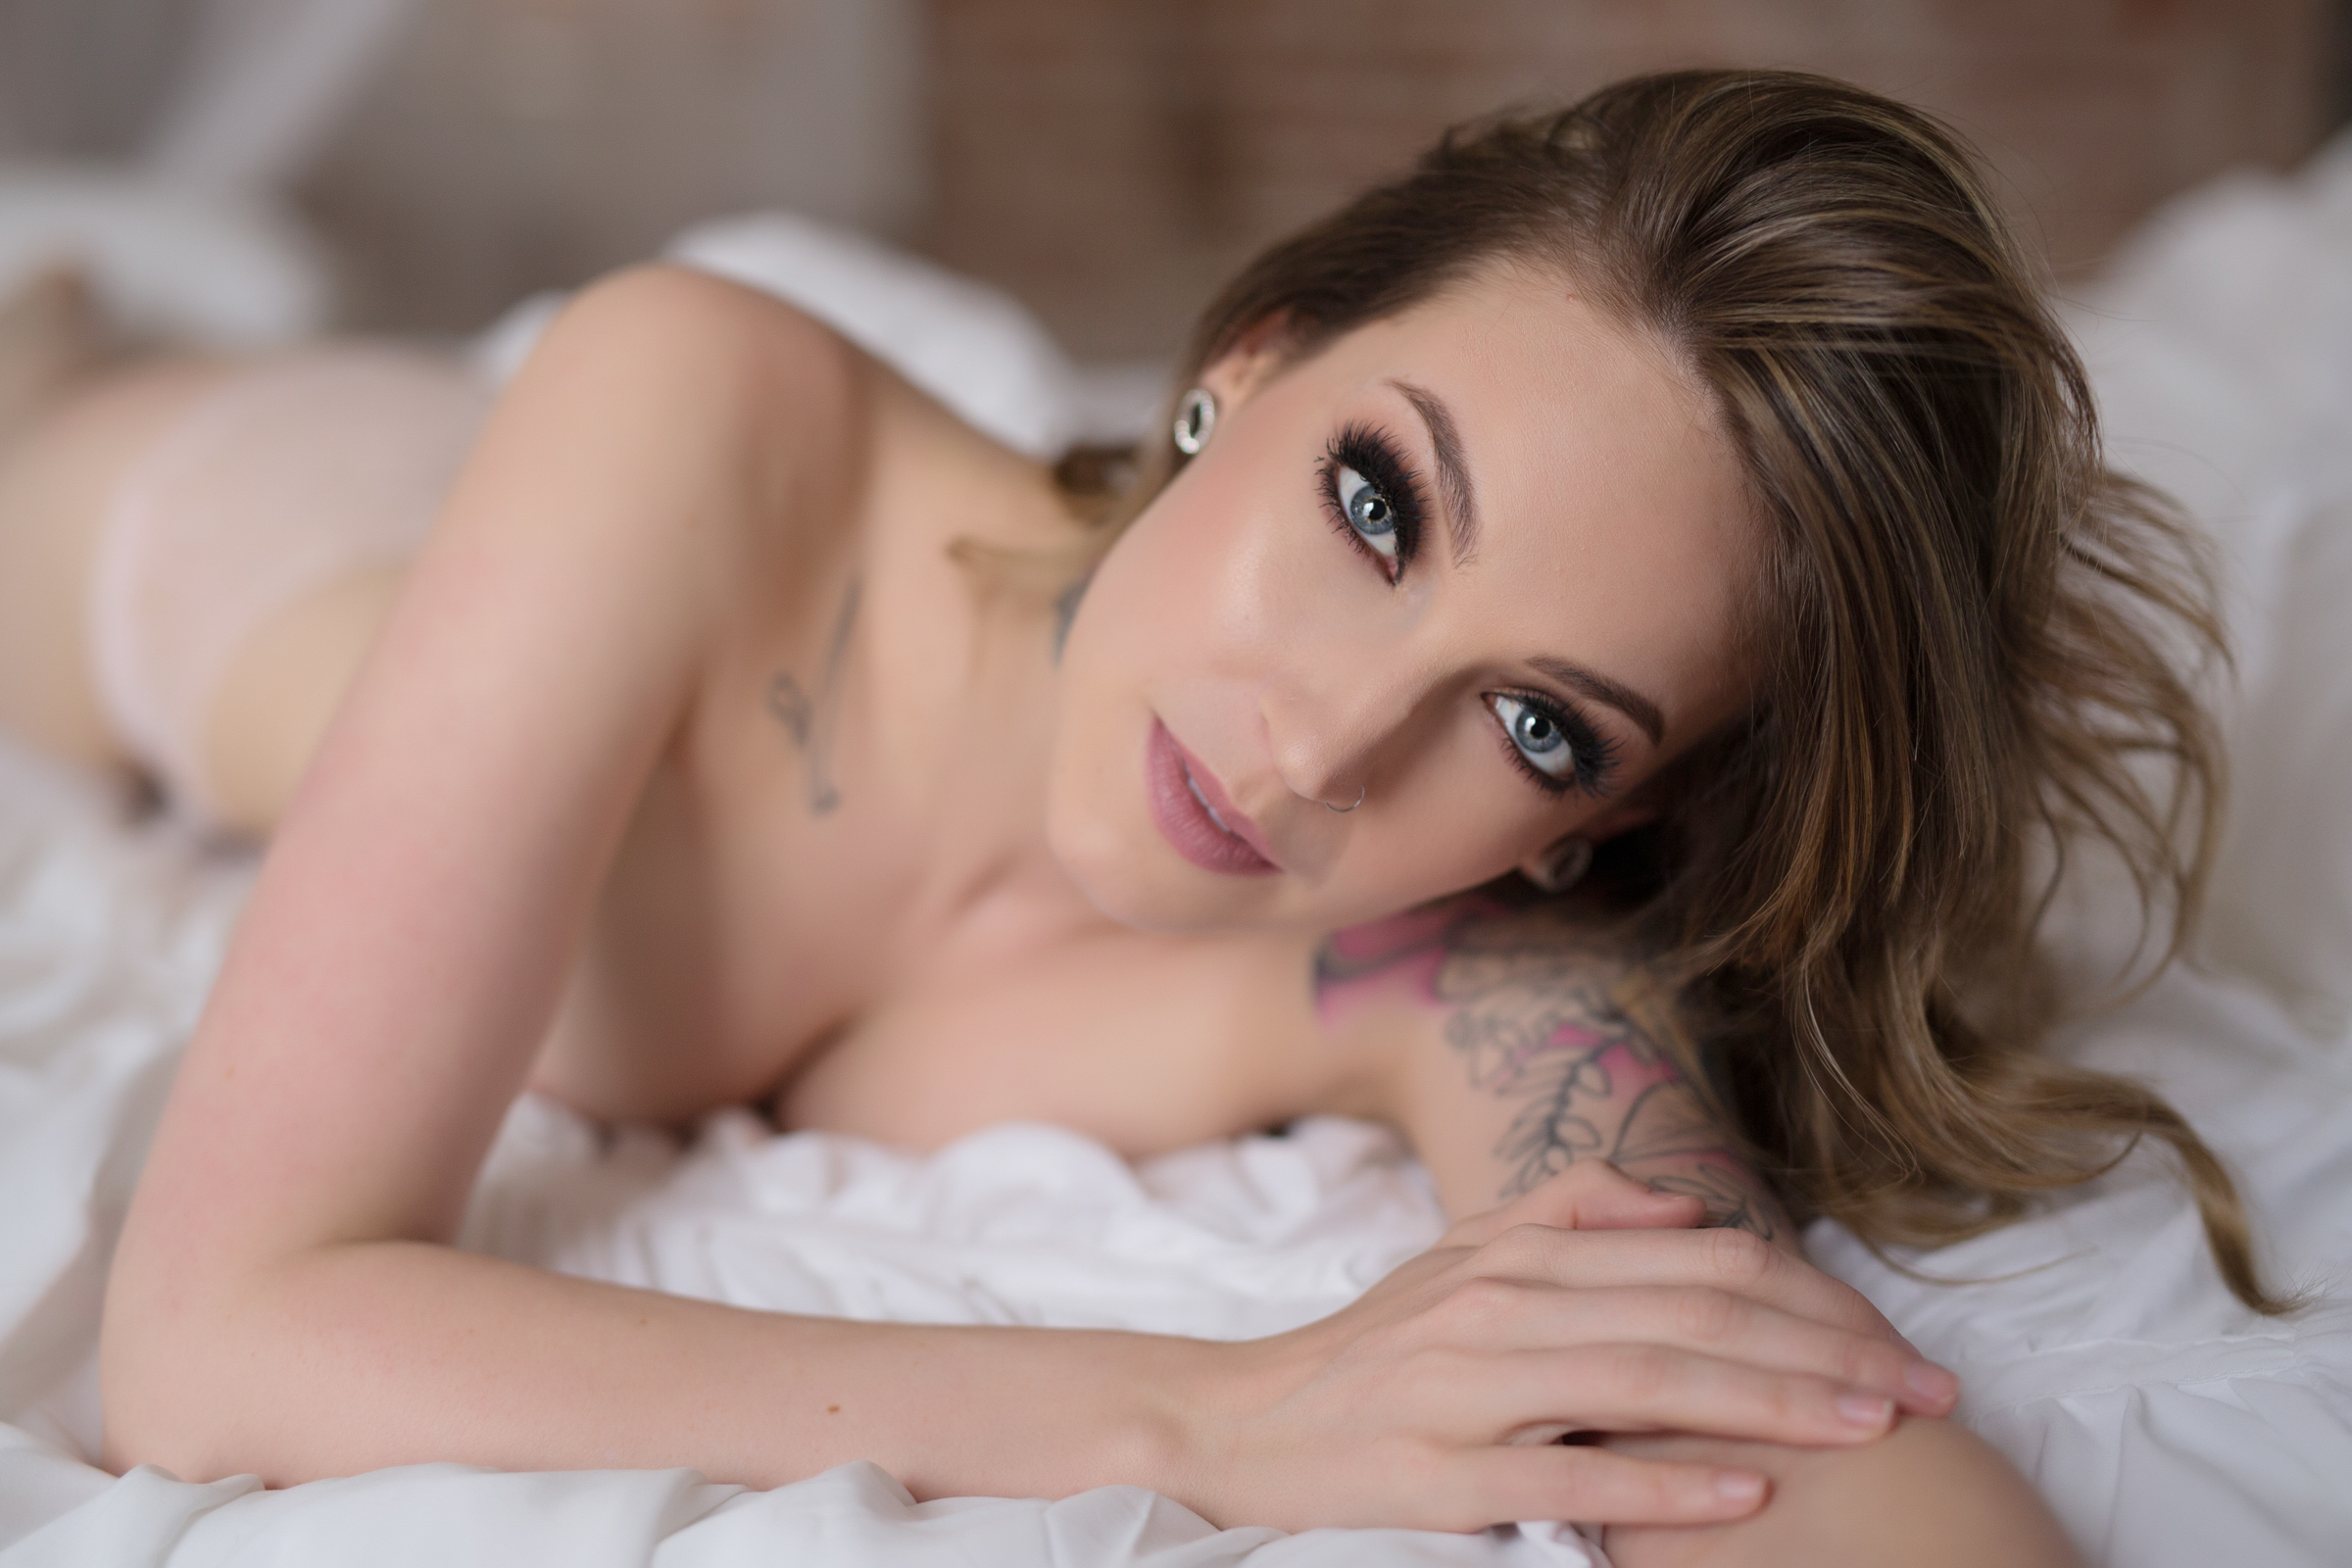 denver-boudoir-photographer, denver-boudoir-studio, denver-boudoir-photography, denver-boudoir-photos, denver-boudoir, colorado-boudoir, colorado-boudoir-studio, denver-photographer, top-denver-boudoir, destination-boudoir-photographer, travel-boudoir-photographer, best-denver-boudoir, colorado-boudoir-photography, colorado-boudoir-photographer, curvy-boudoir, best-colorado-boudoir